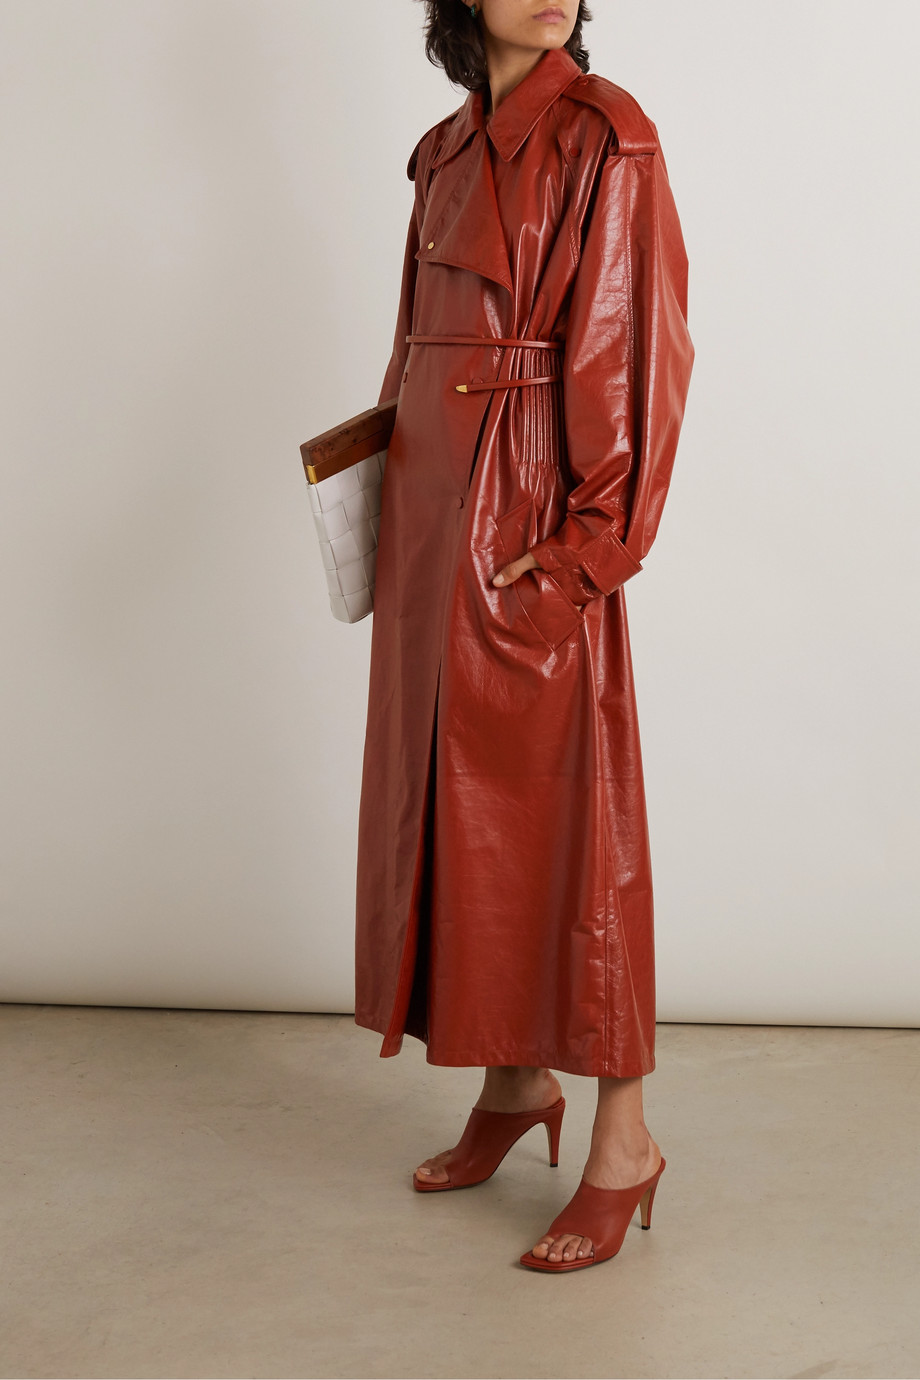 Bottega Veneta Trenchcoat aus Glanzleder in Knitteroptik